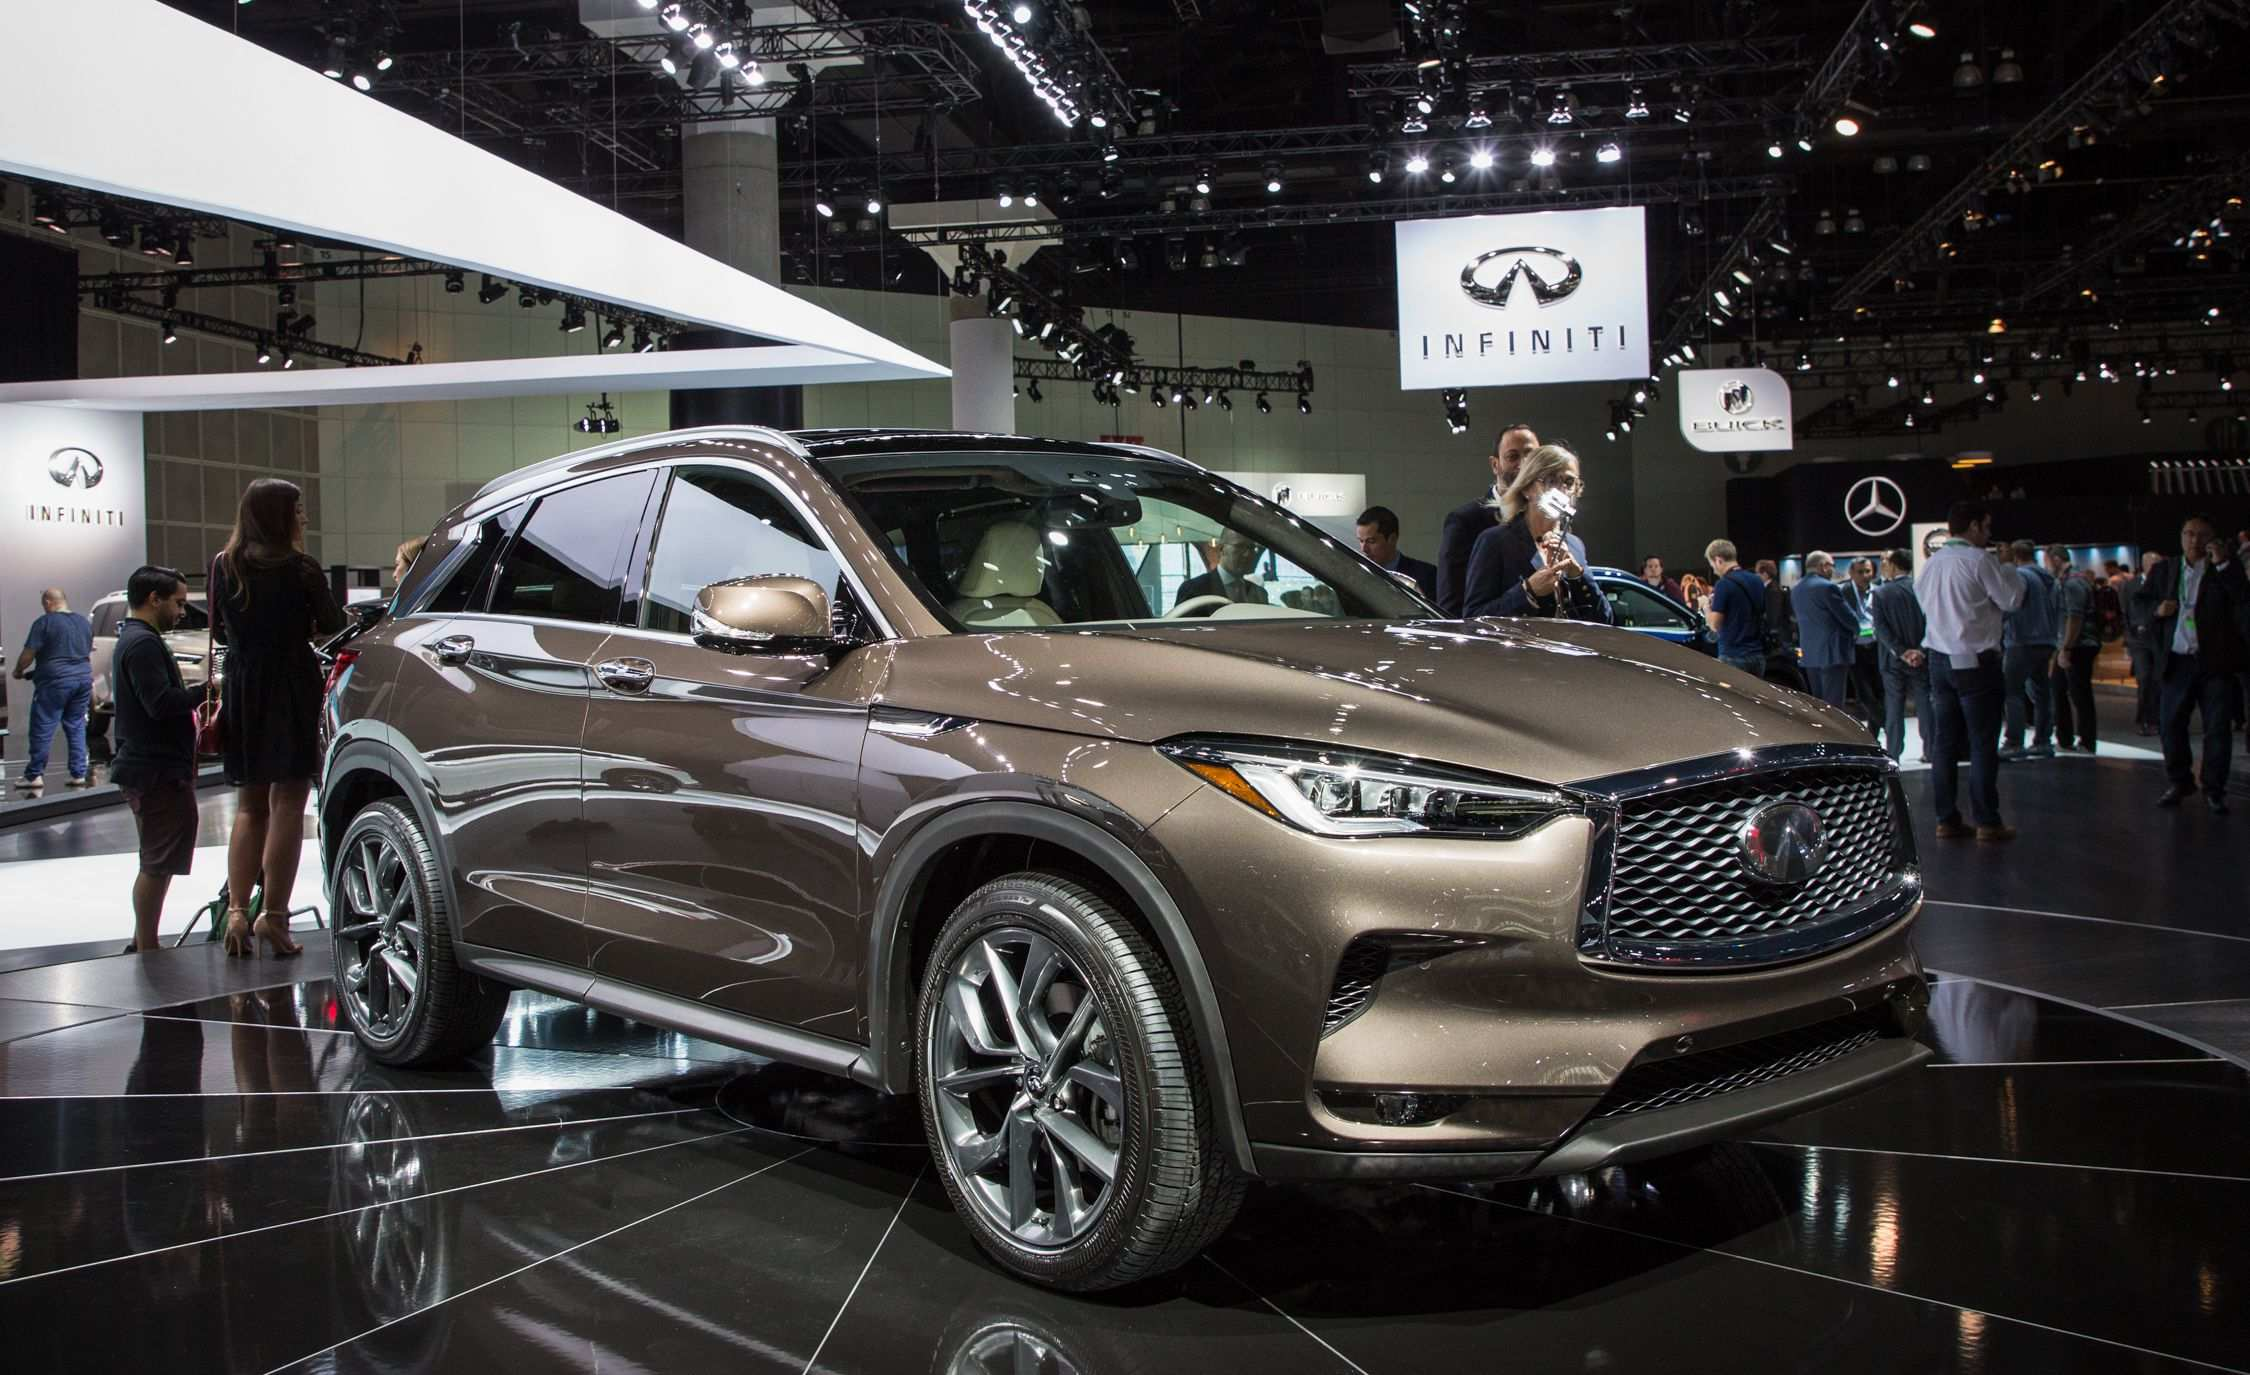 92 All New 2019 Infiniti Qx50 Horsepower Price And Release Date